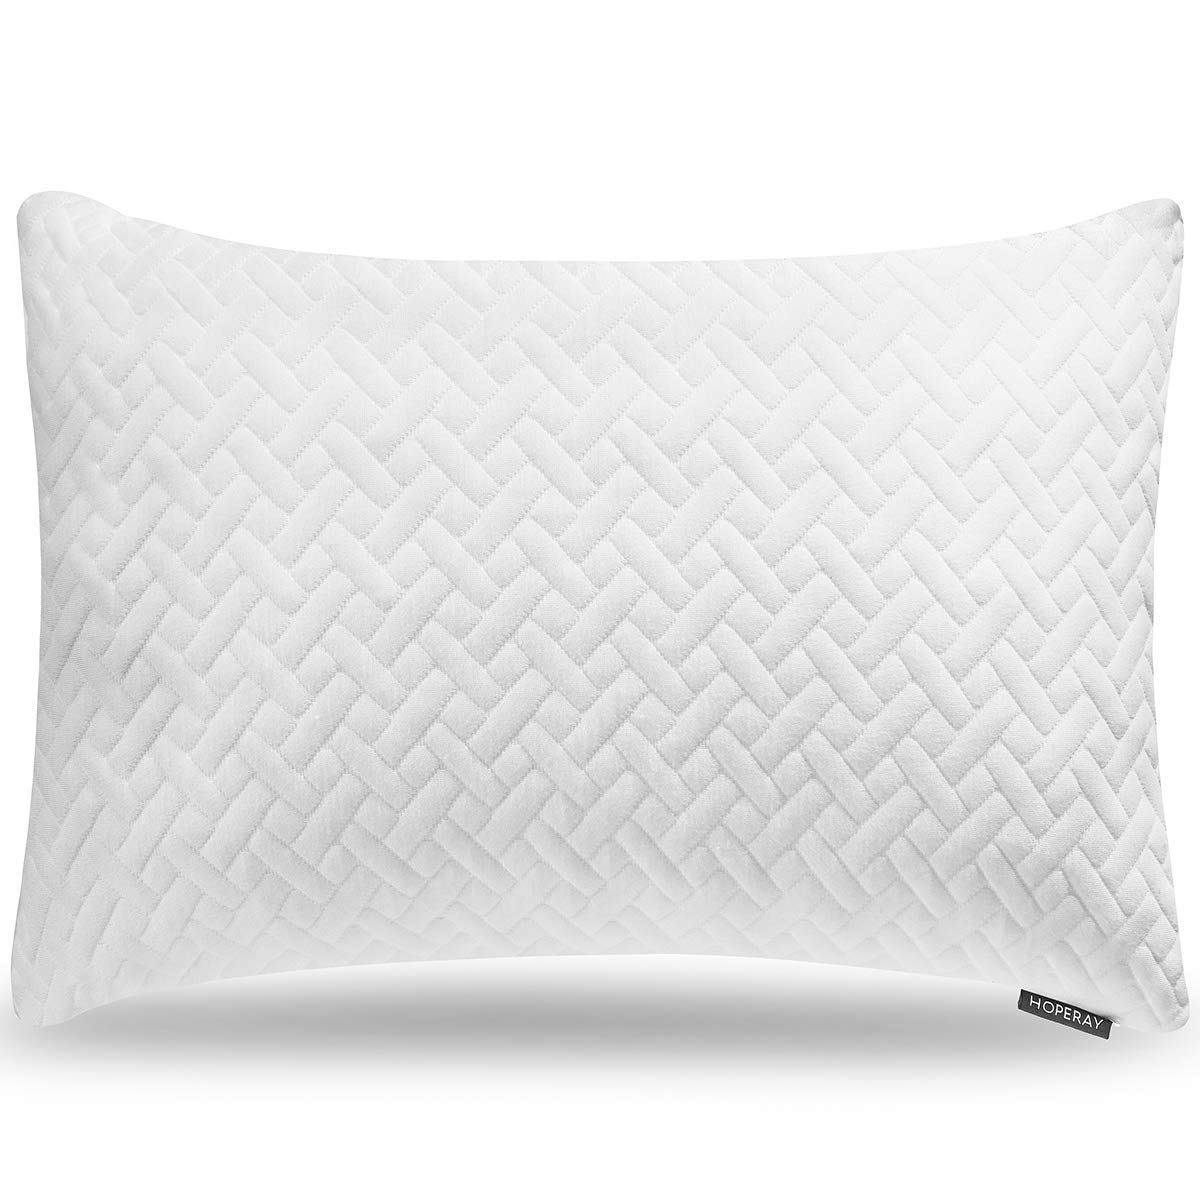 Hoperay Shredded Memory Foam Pillow Review by www.snoremagazine.com